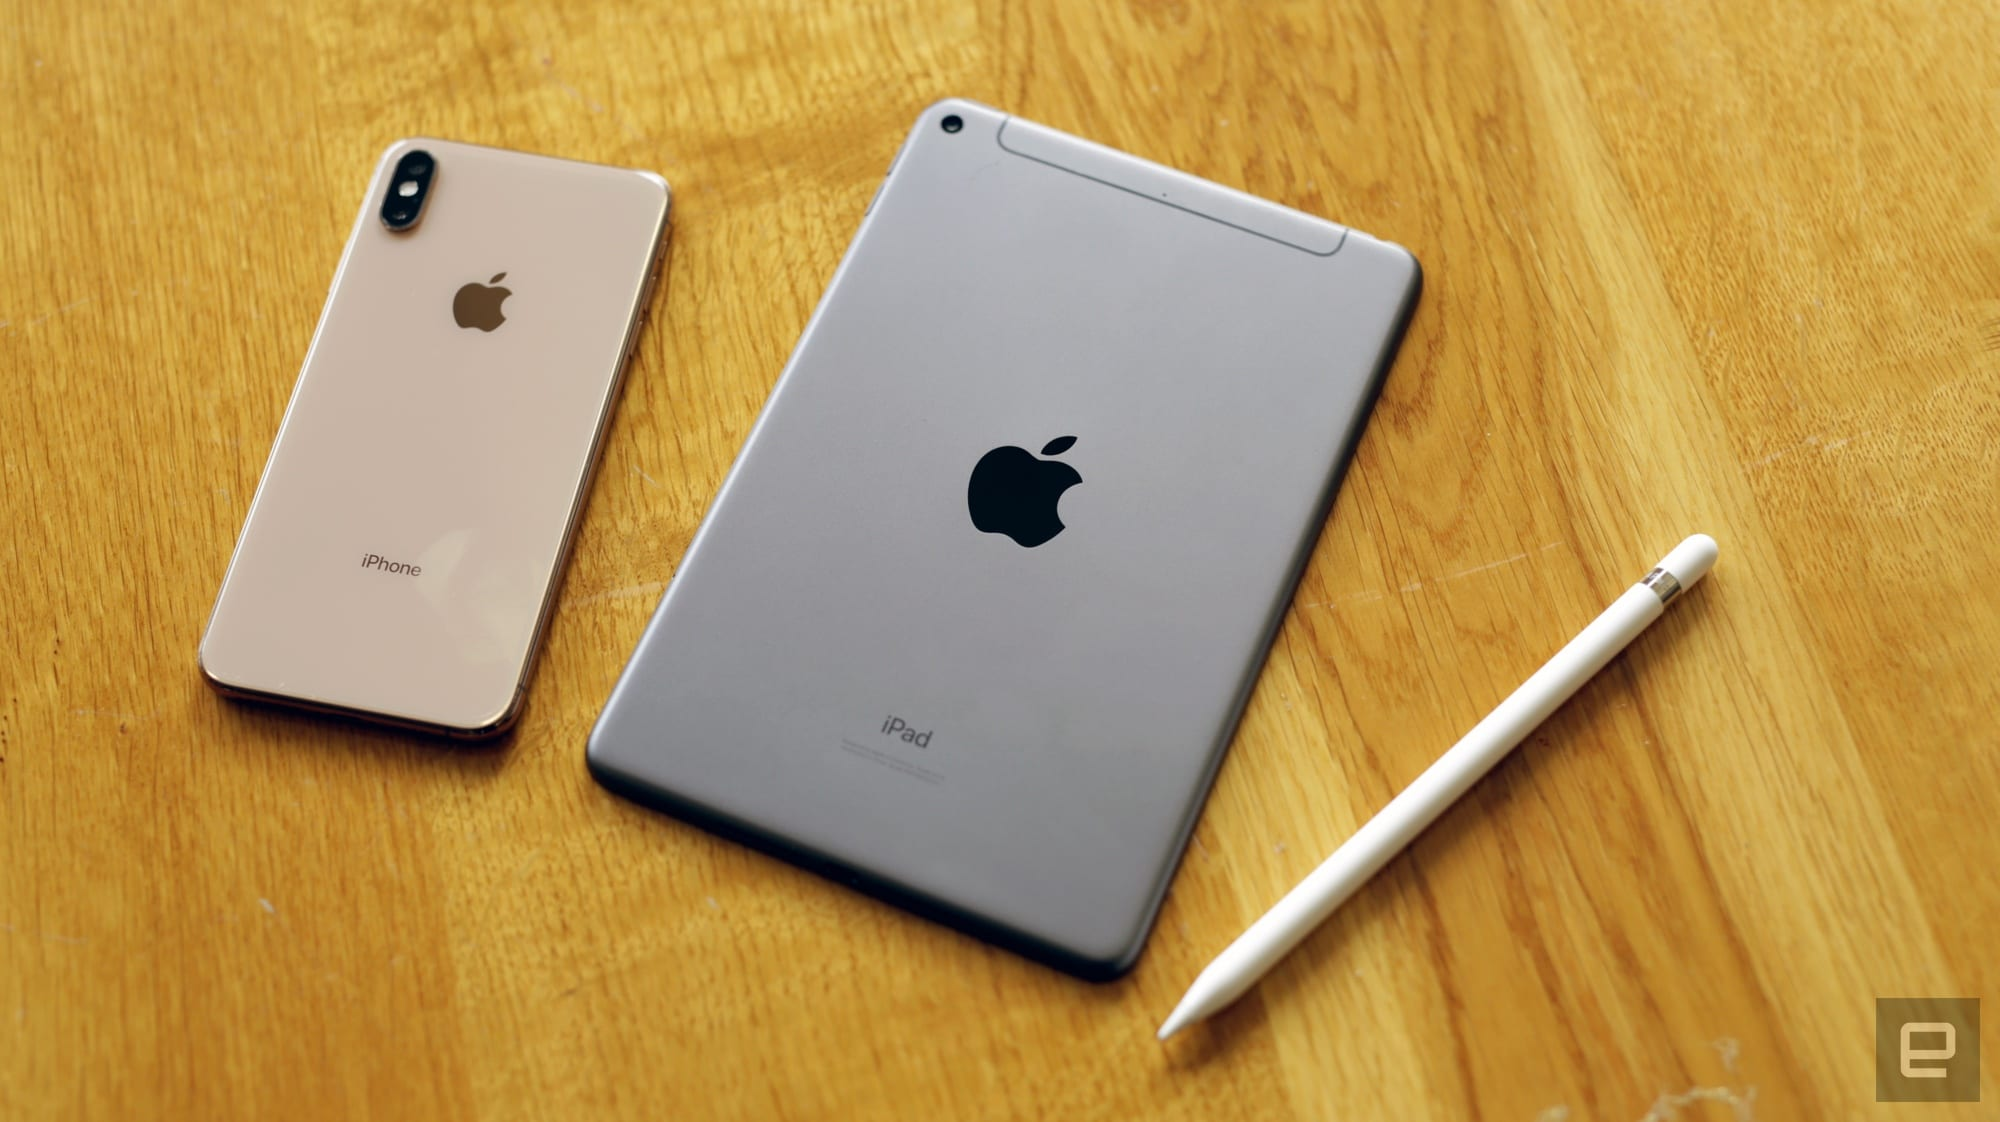 Apple iPad mini review (2019): Still the best small tablet